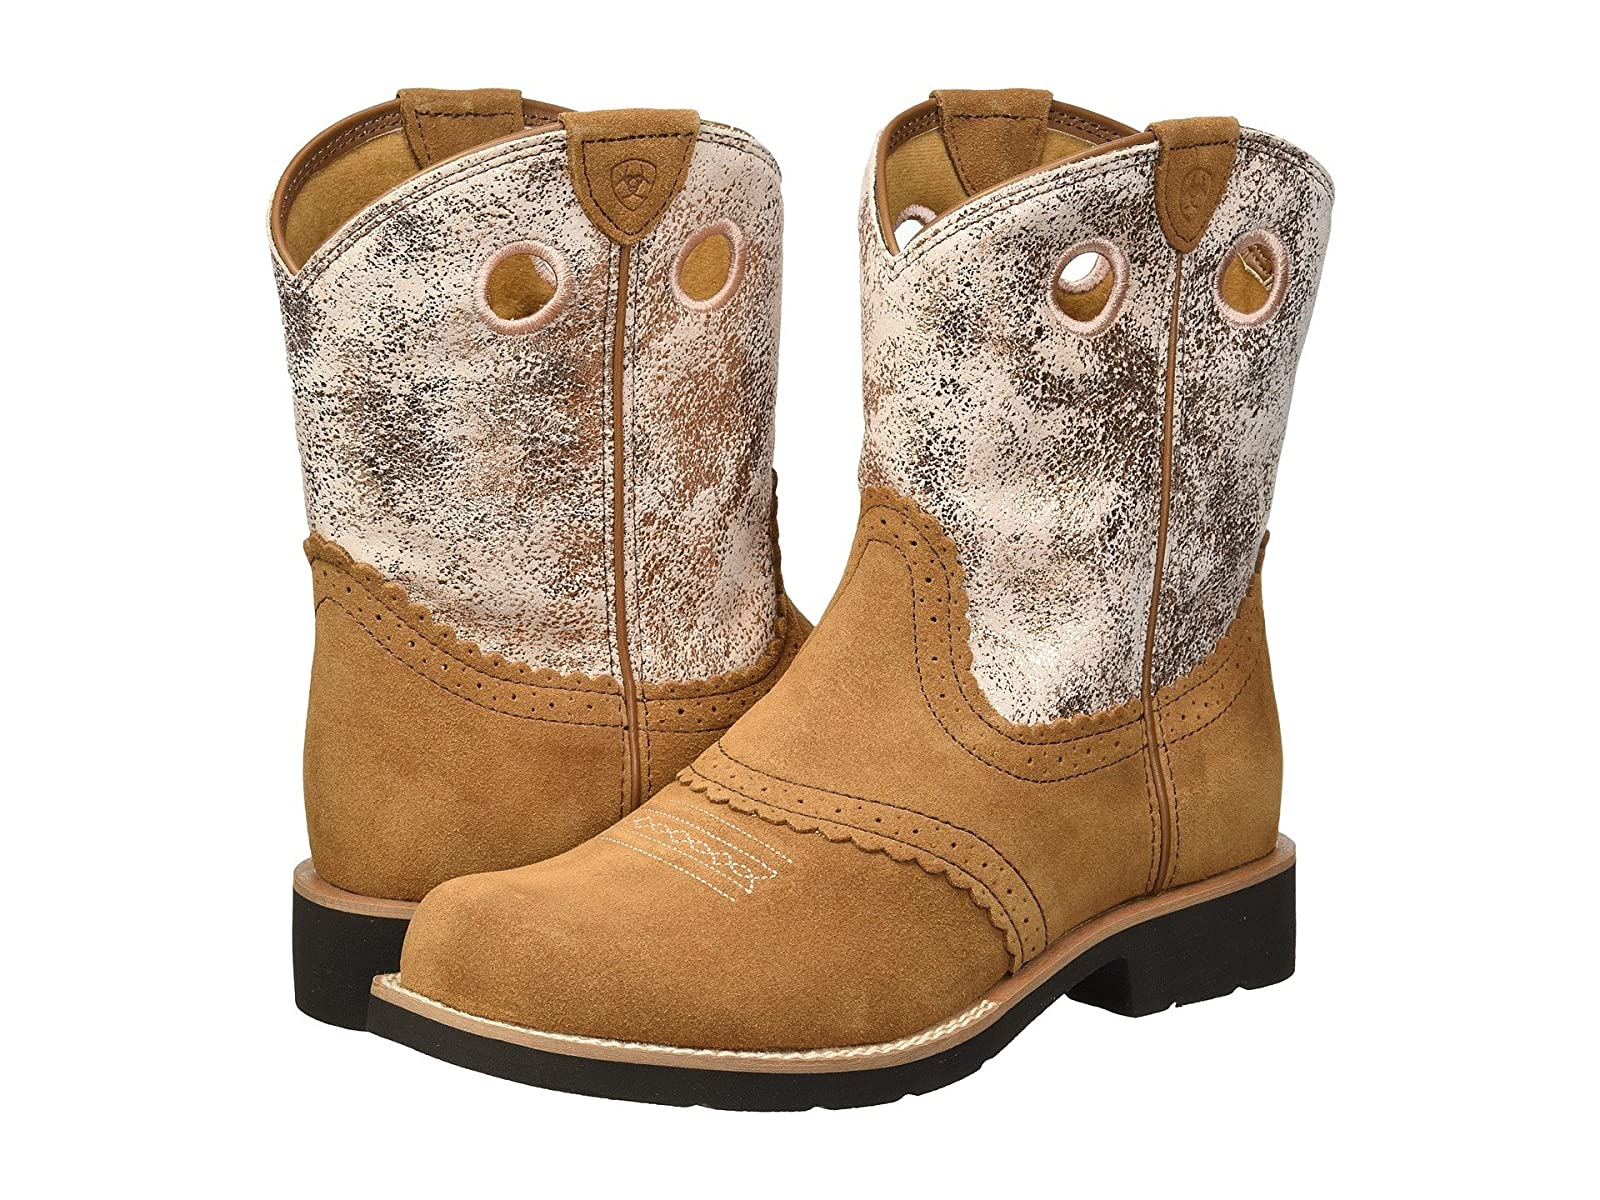 Ariat Kids Fatbaby Cowgirl (Toddler/Little Kid/Big Kid)Selling fashionable and eye-catching shoes